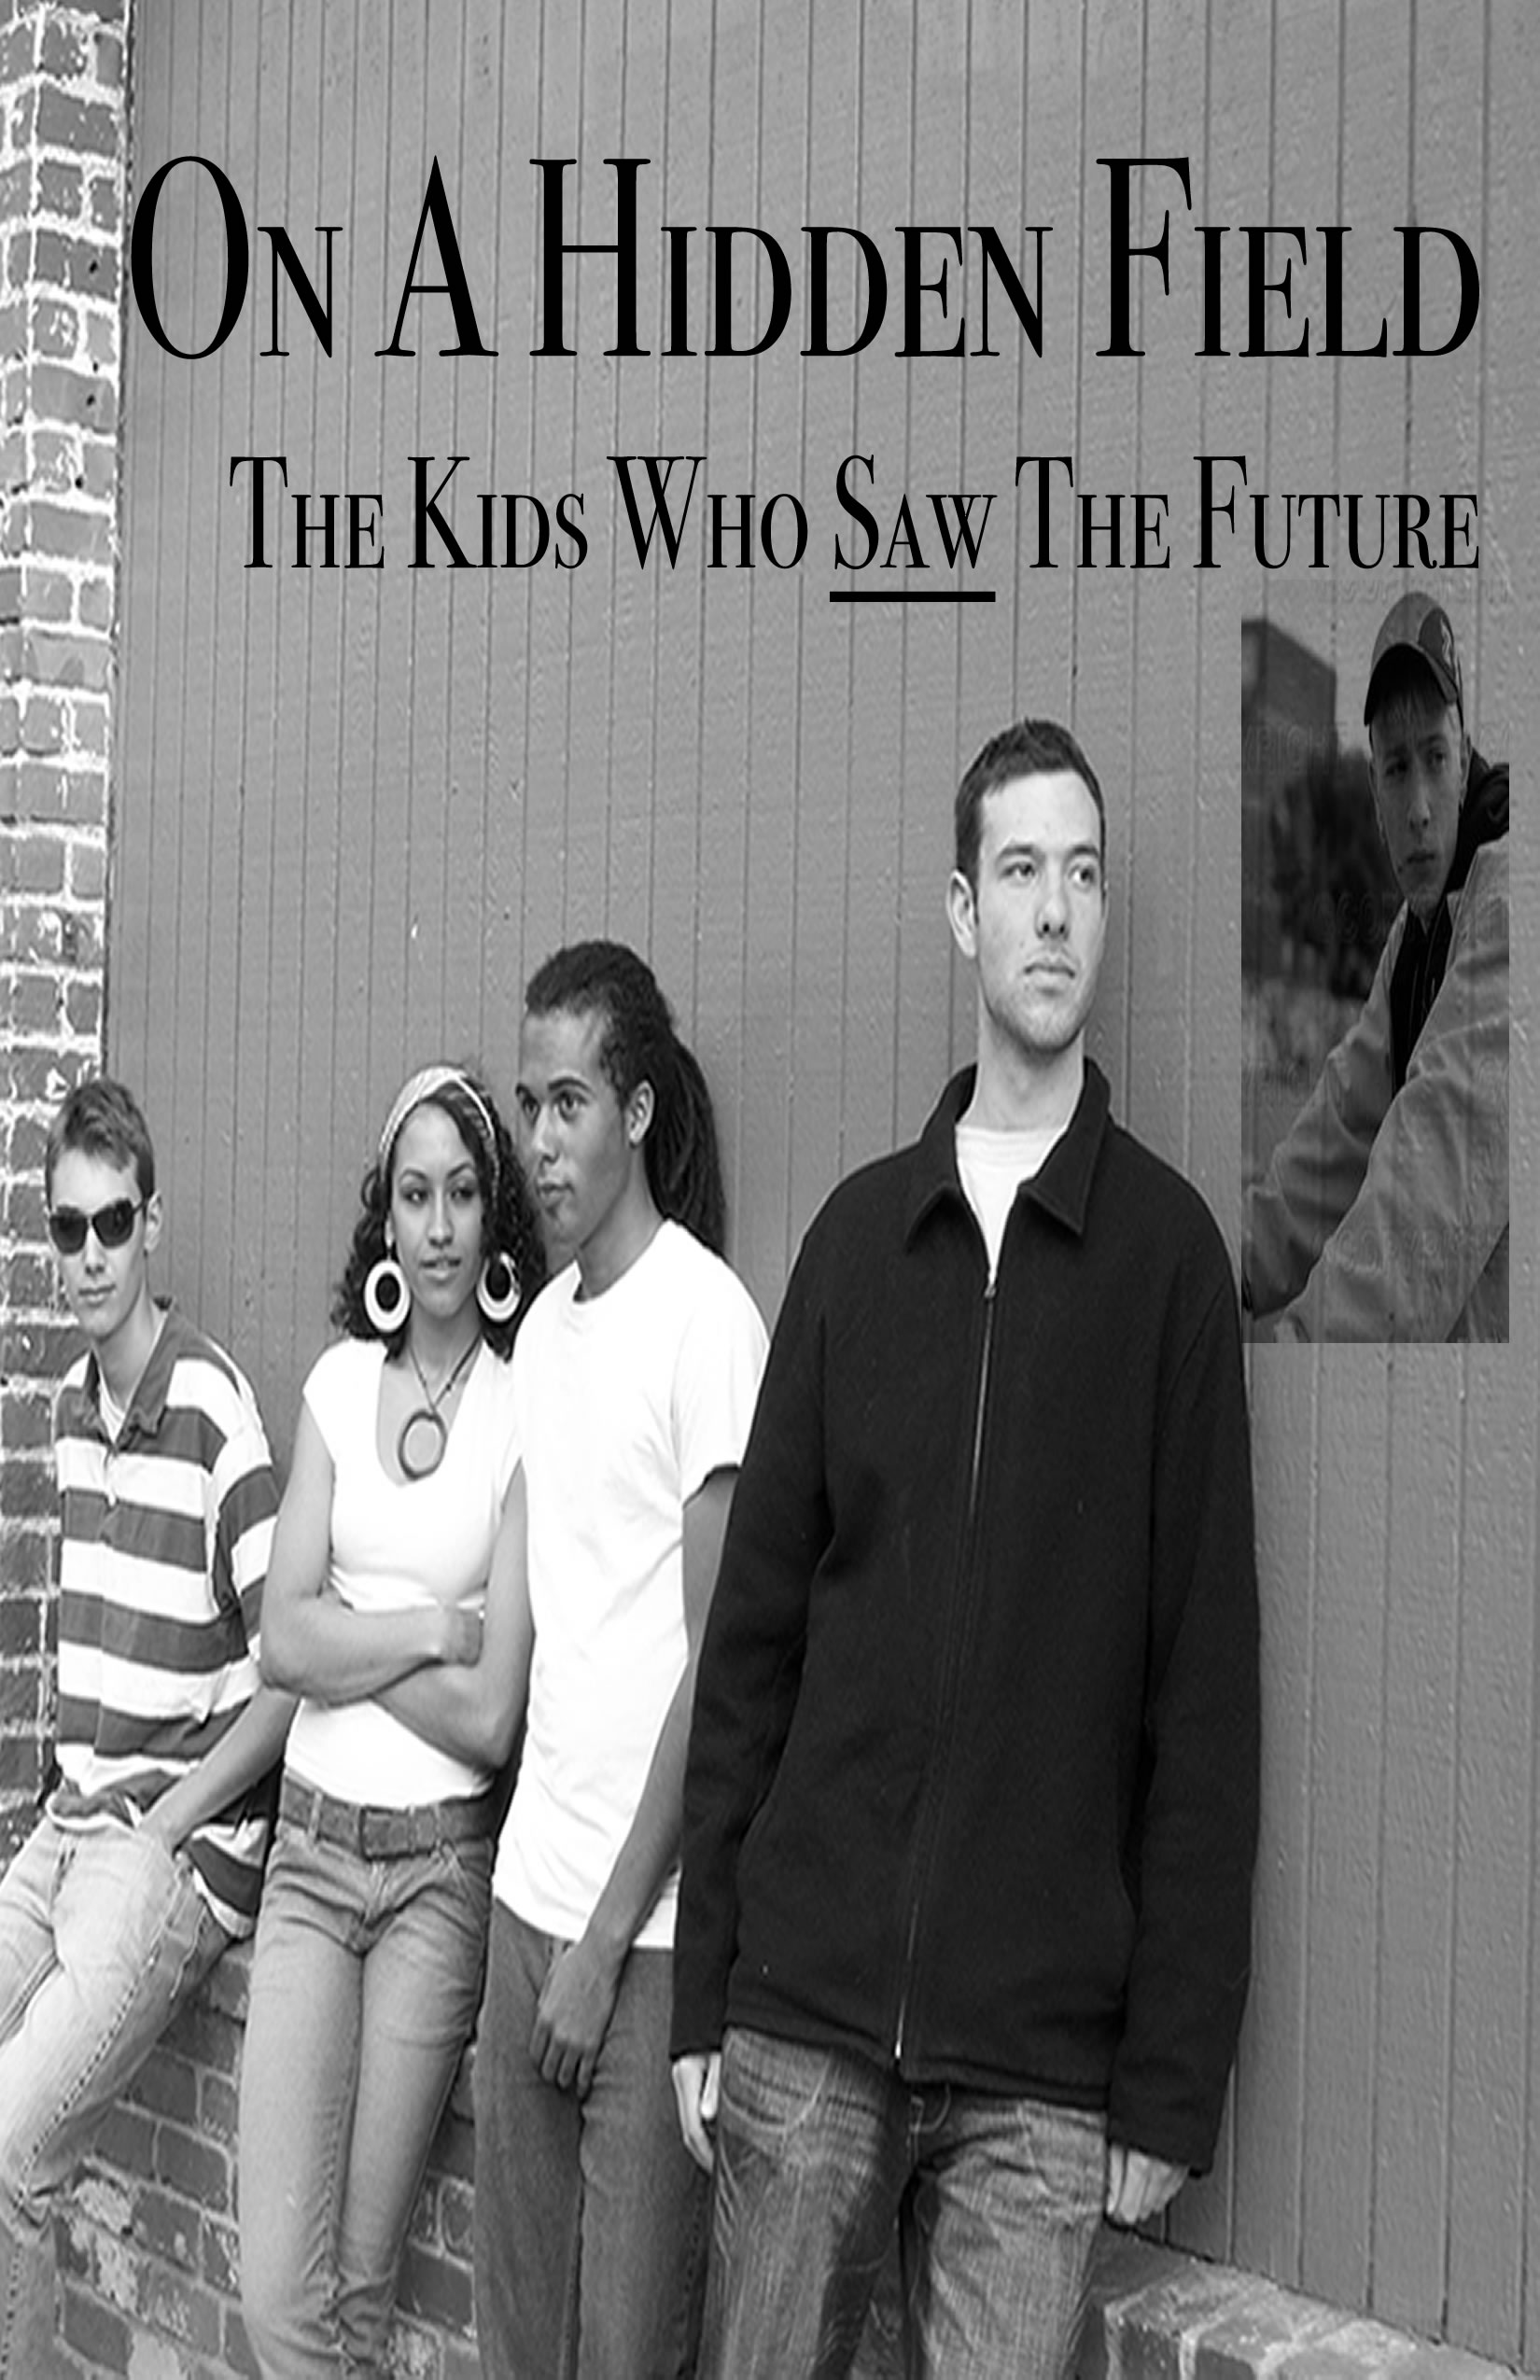 On a Hidden Field - The Kids Who Saw the Future